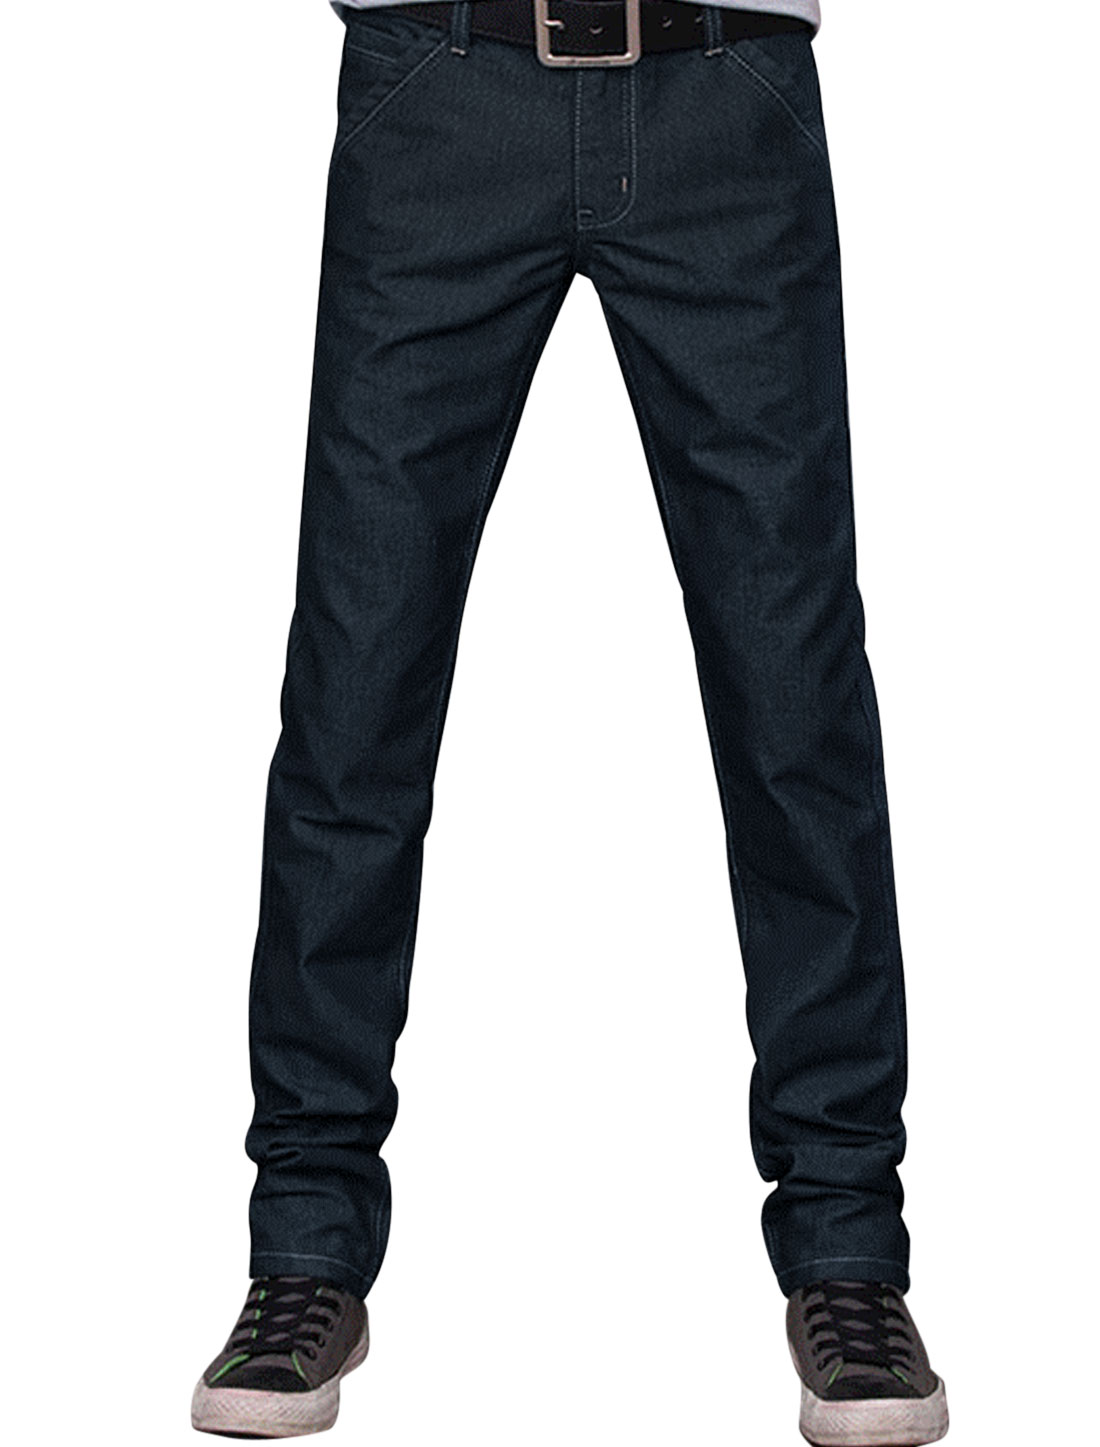 Men Dark Blue Zip Up Closure Two Pockets Back Side Pockets Long Casual Pants W36